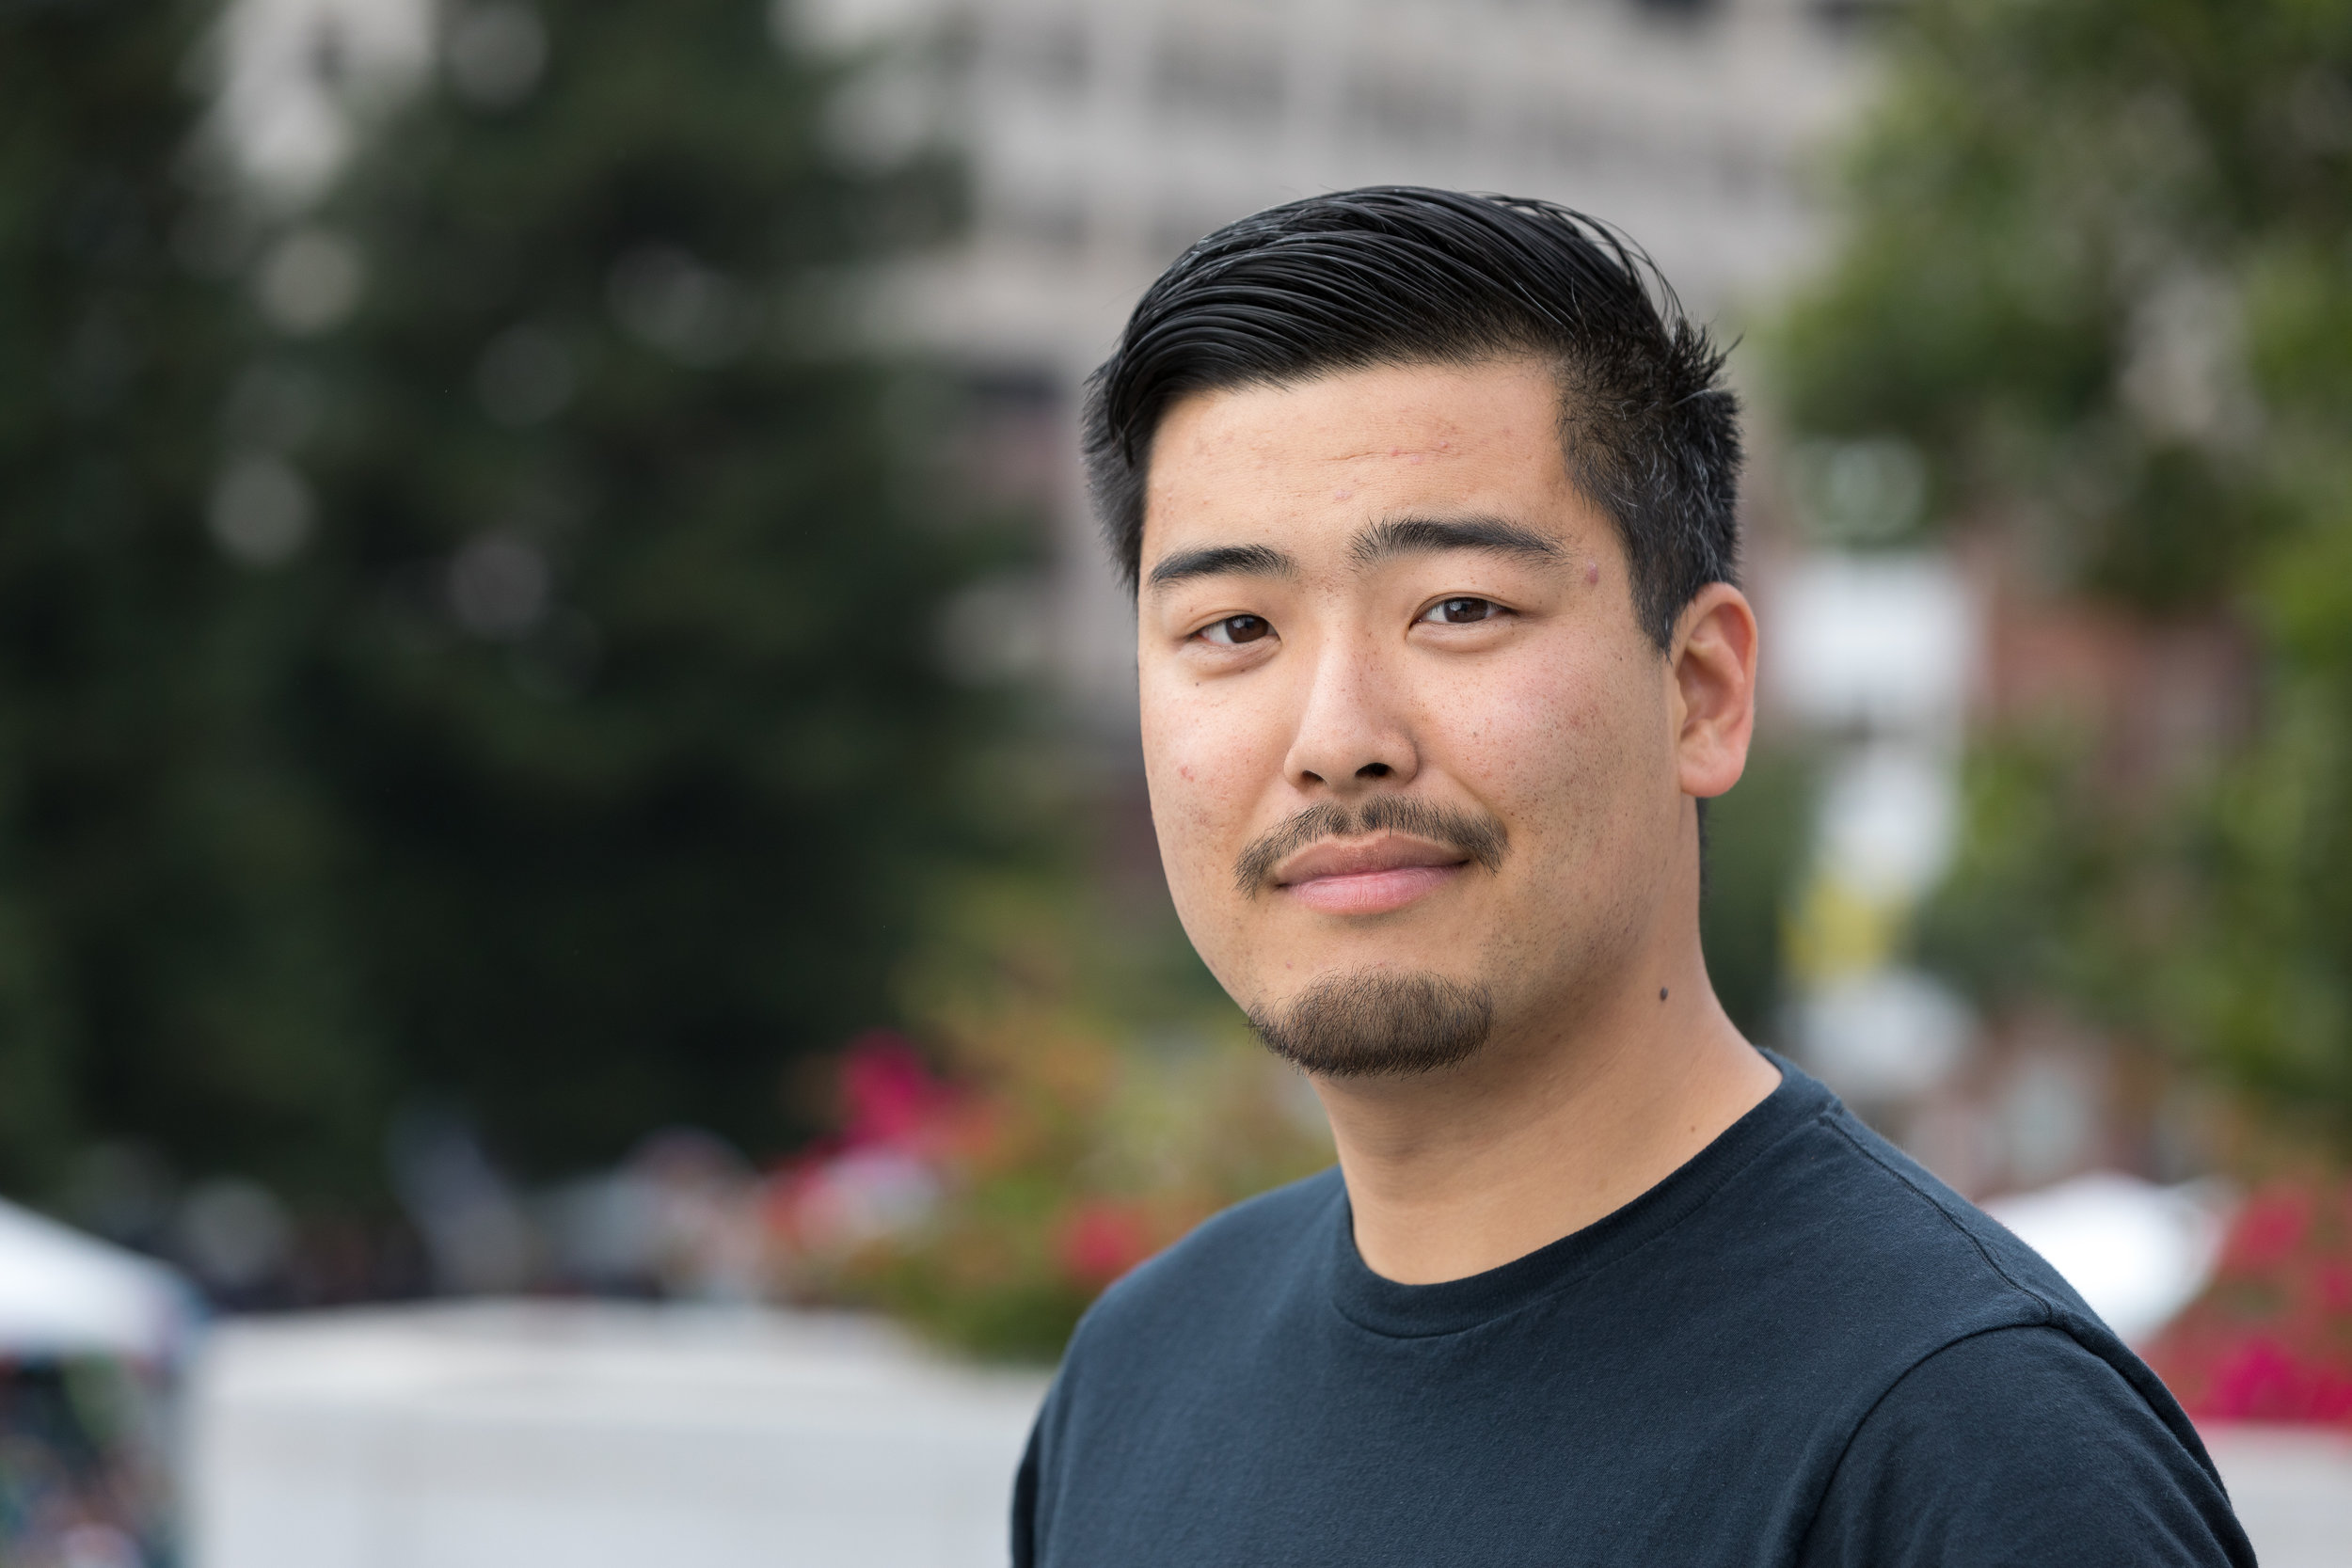 Andrew Chung  spends his days working at a biotech company in South San Francisco, but has spent the last 4 years of nights & weekends performing theater all over the Bay Area. He has worked with a number of companies, including Dragon Productions Theater Company (Take Me Out, The Libation Bearers), FaultLine Theater (Dead Dog's Bone), No Nude Men Productions (Pastorella), PianoFight (Twins, ShortLived), and San Francisco Theater Pub (Pint-Sized Plays). He would like to thank the SOMA production team for giving him this chance to explore the world of musical theater!